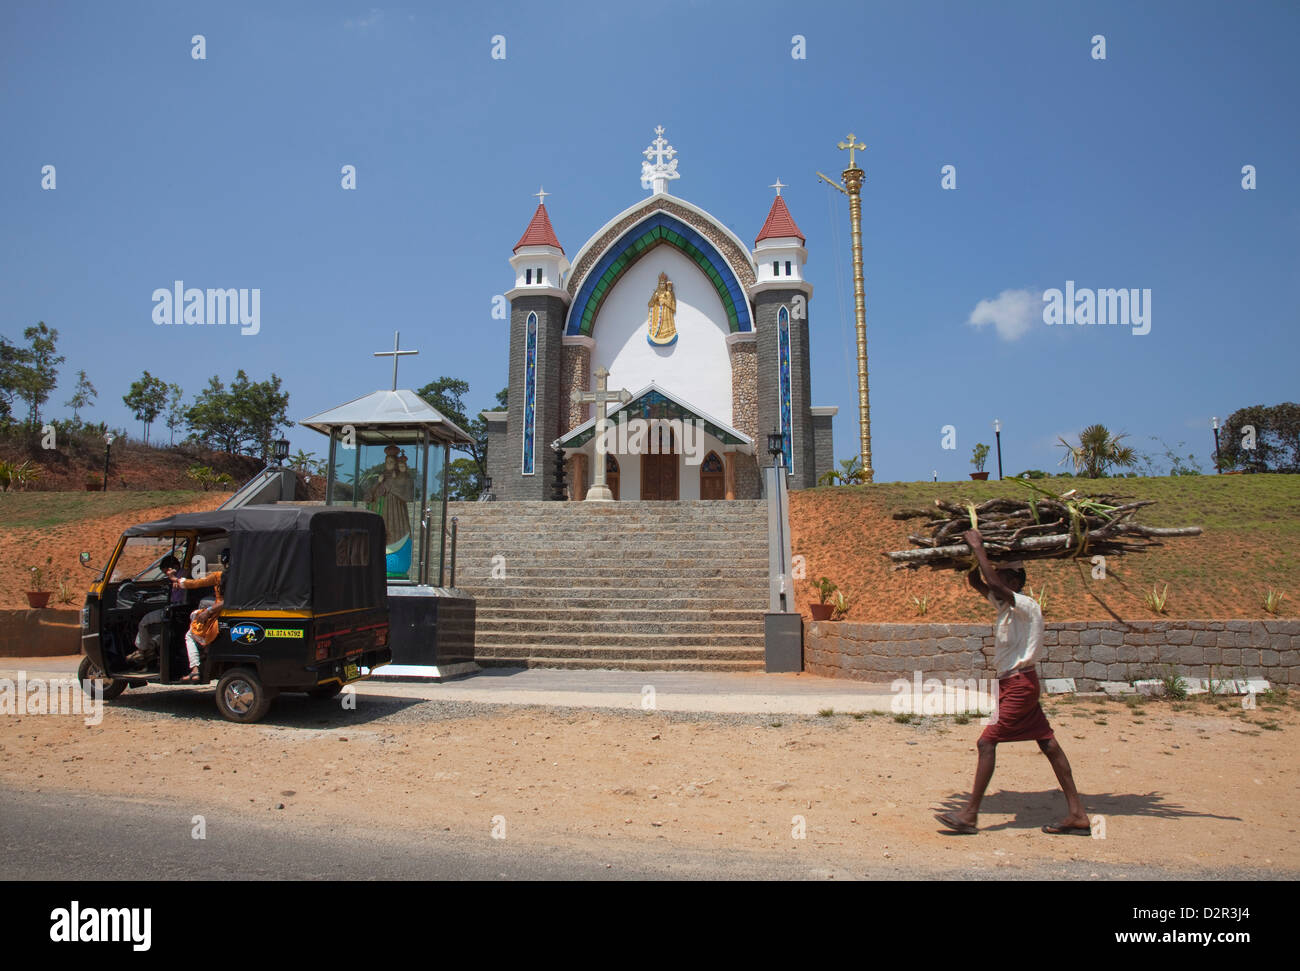 Man carrying firewood on his head walking past a church in rural Kerala, India, Asia Stock Photo